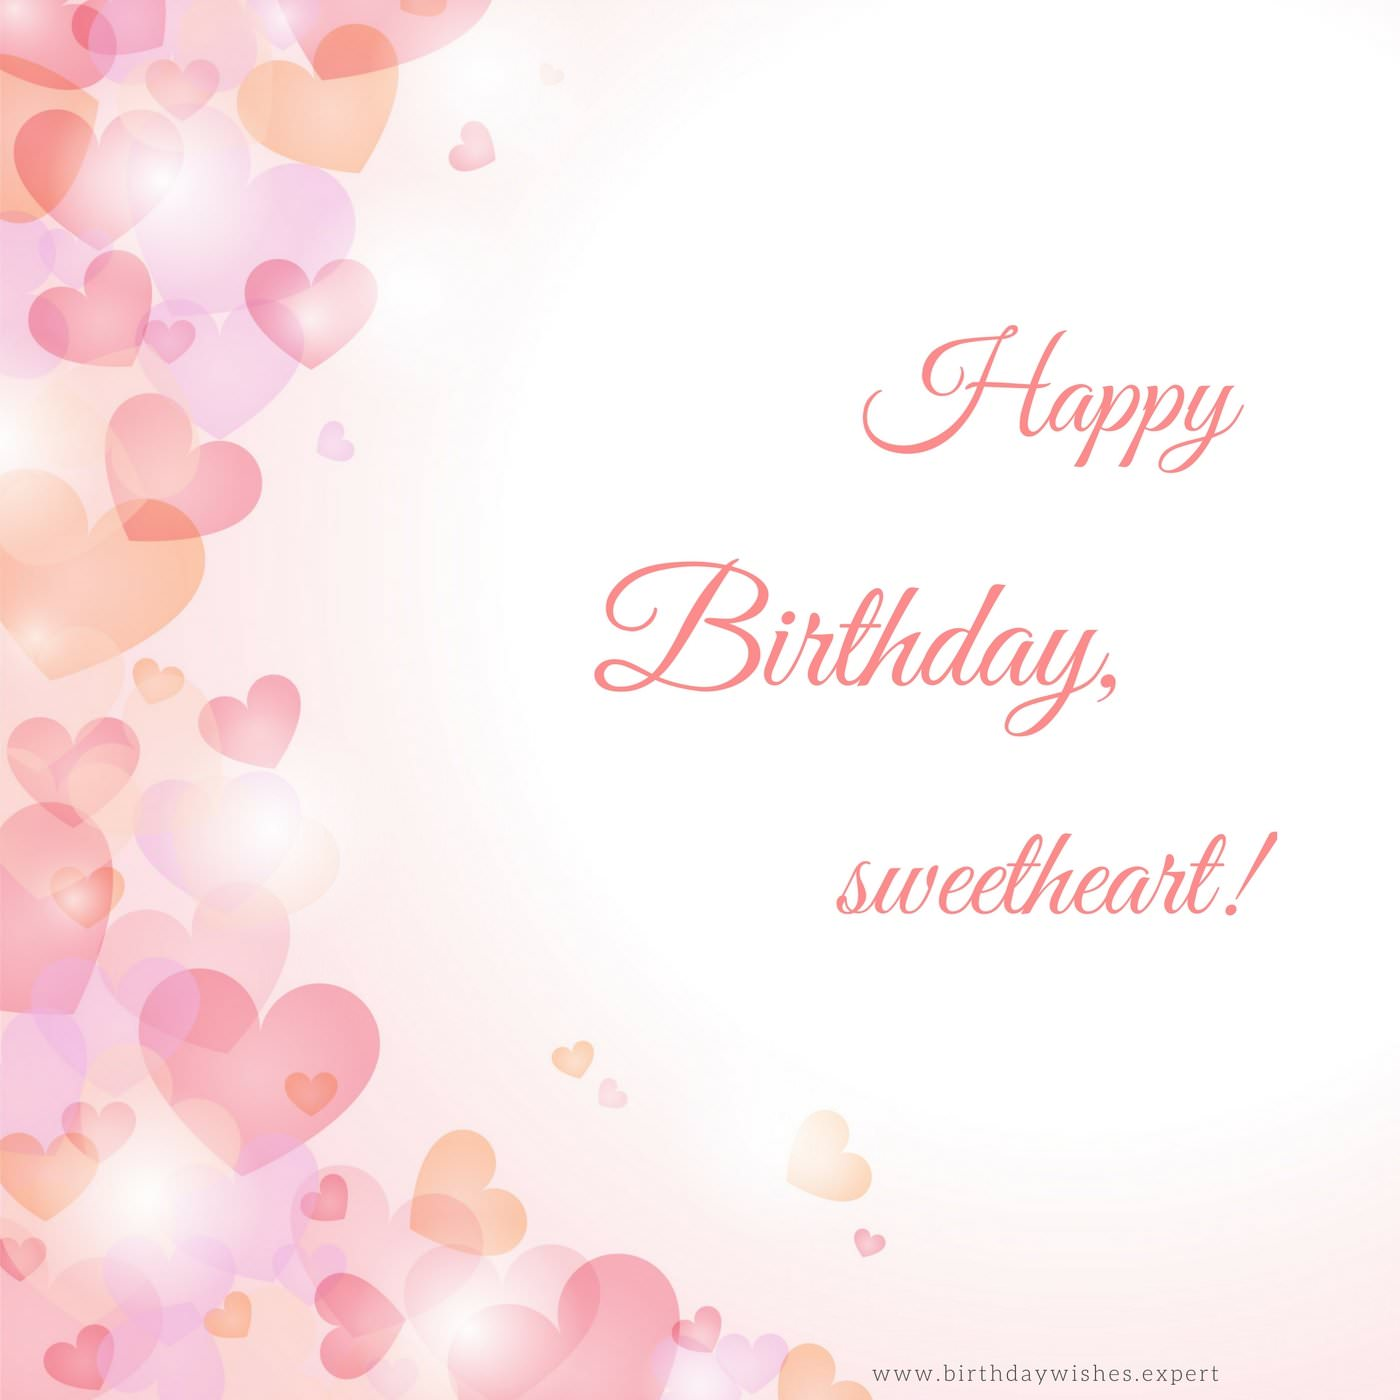 100 ideas for birthday wishes for your husband happy birthday sweetheart kristyandbryce Choice Image